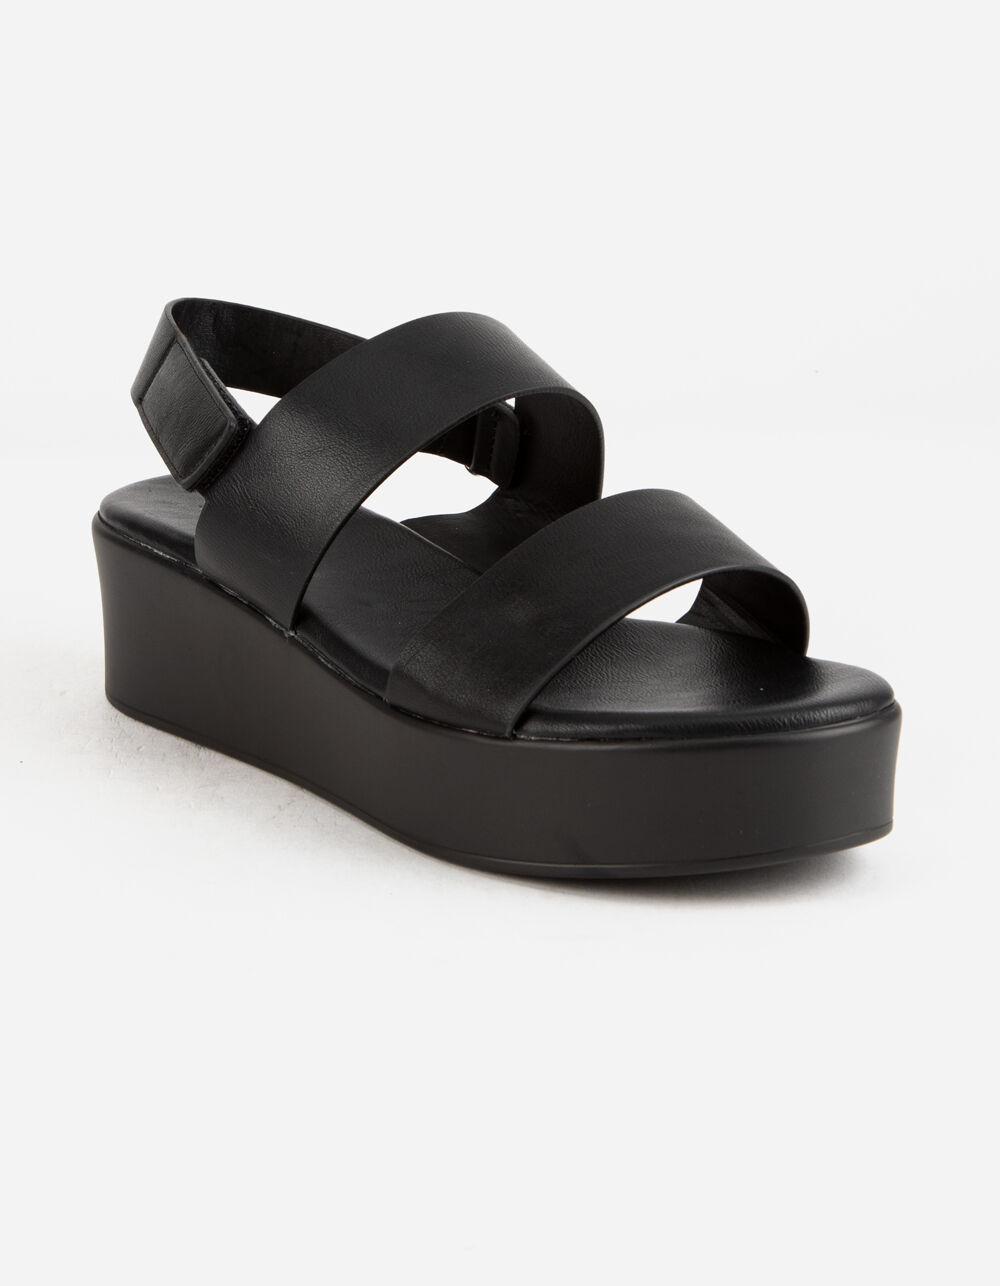 Image of BAMBOO 2 STRAP FLATFORM SANDALS